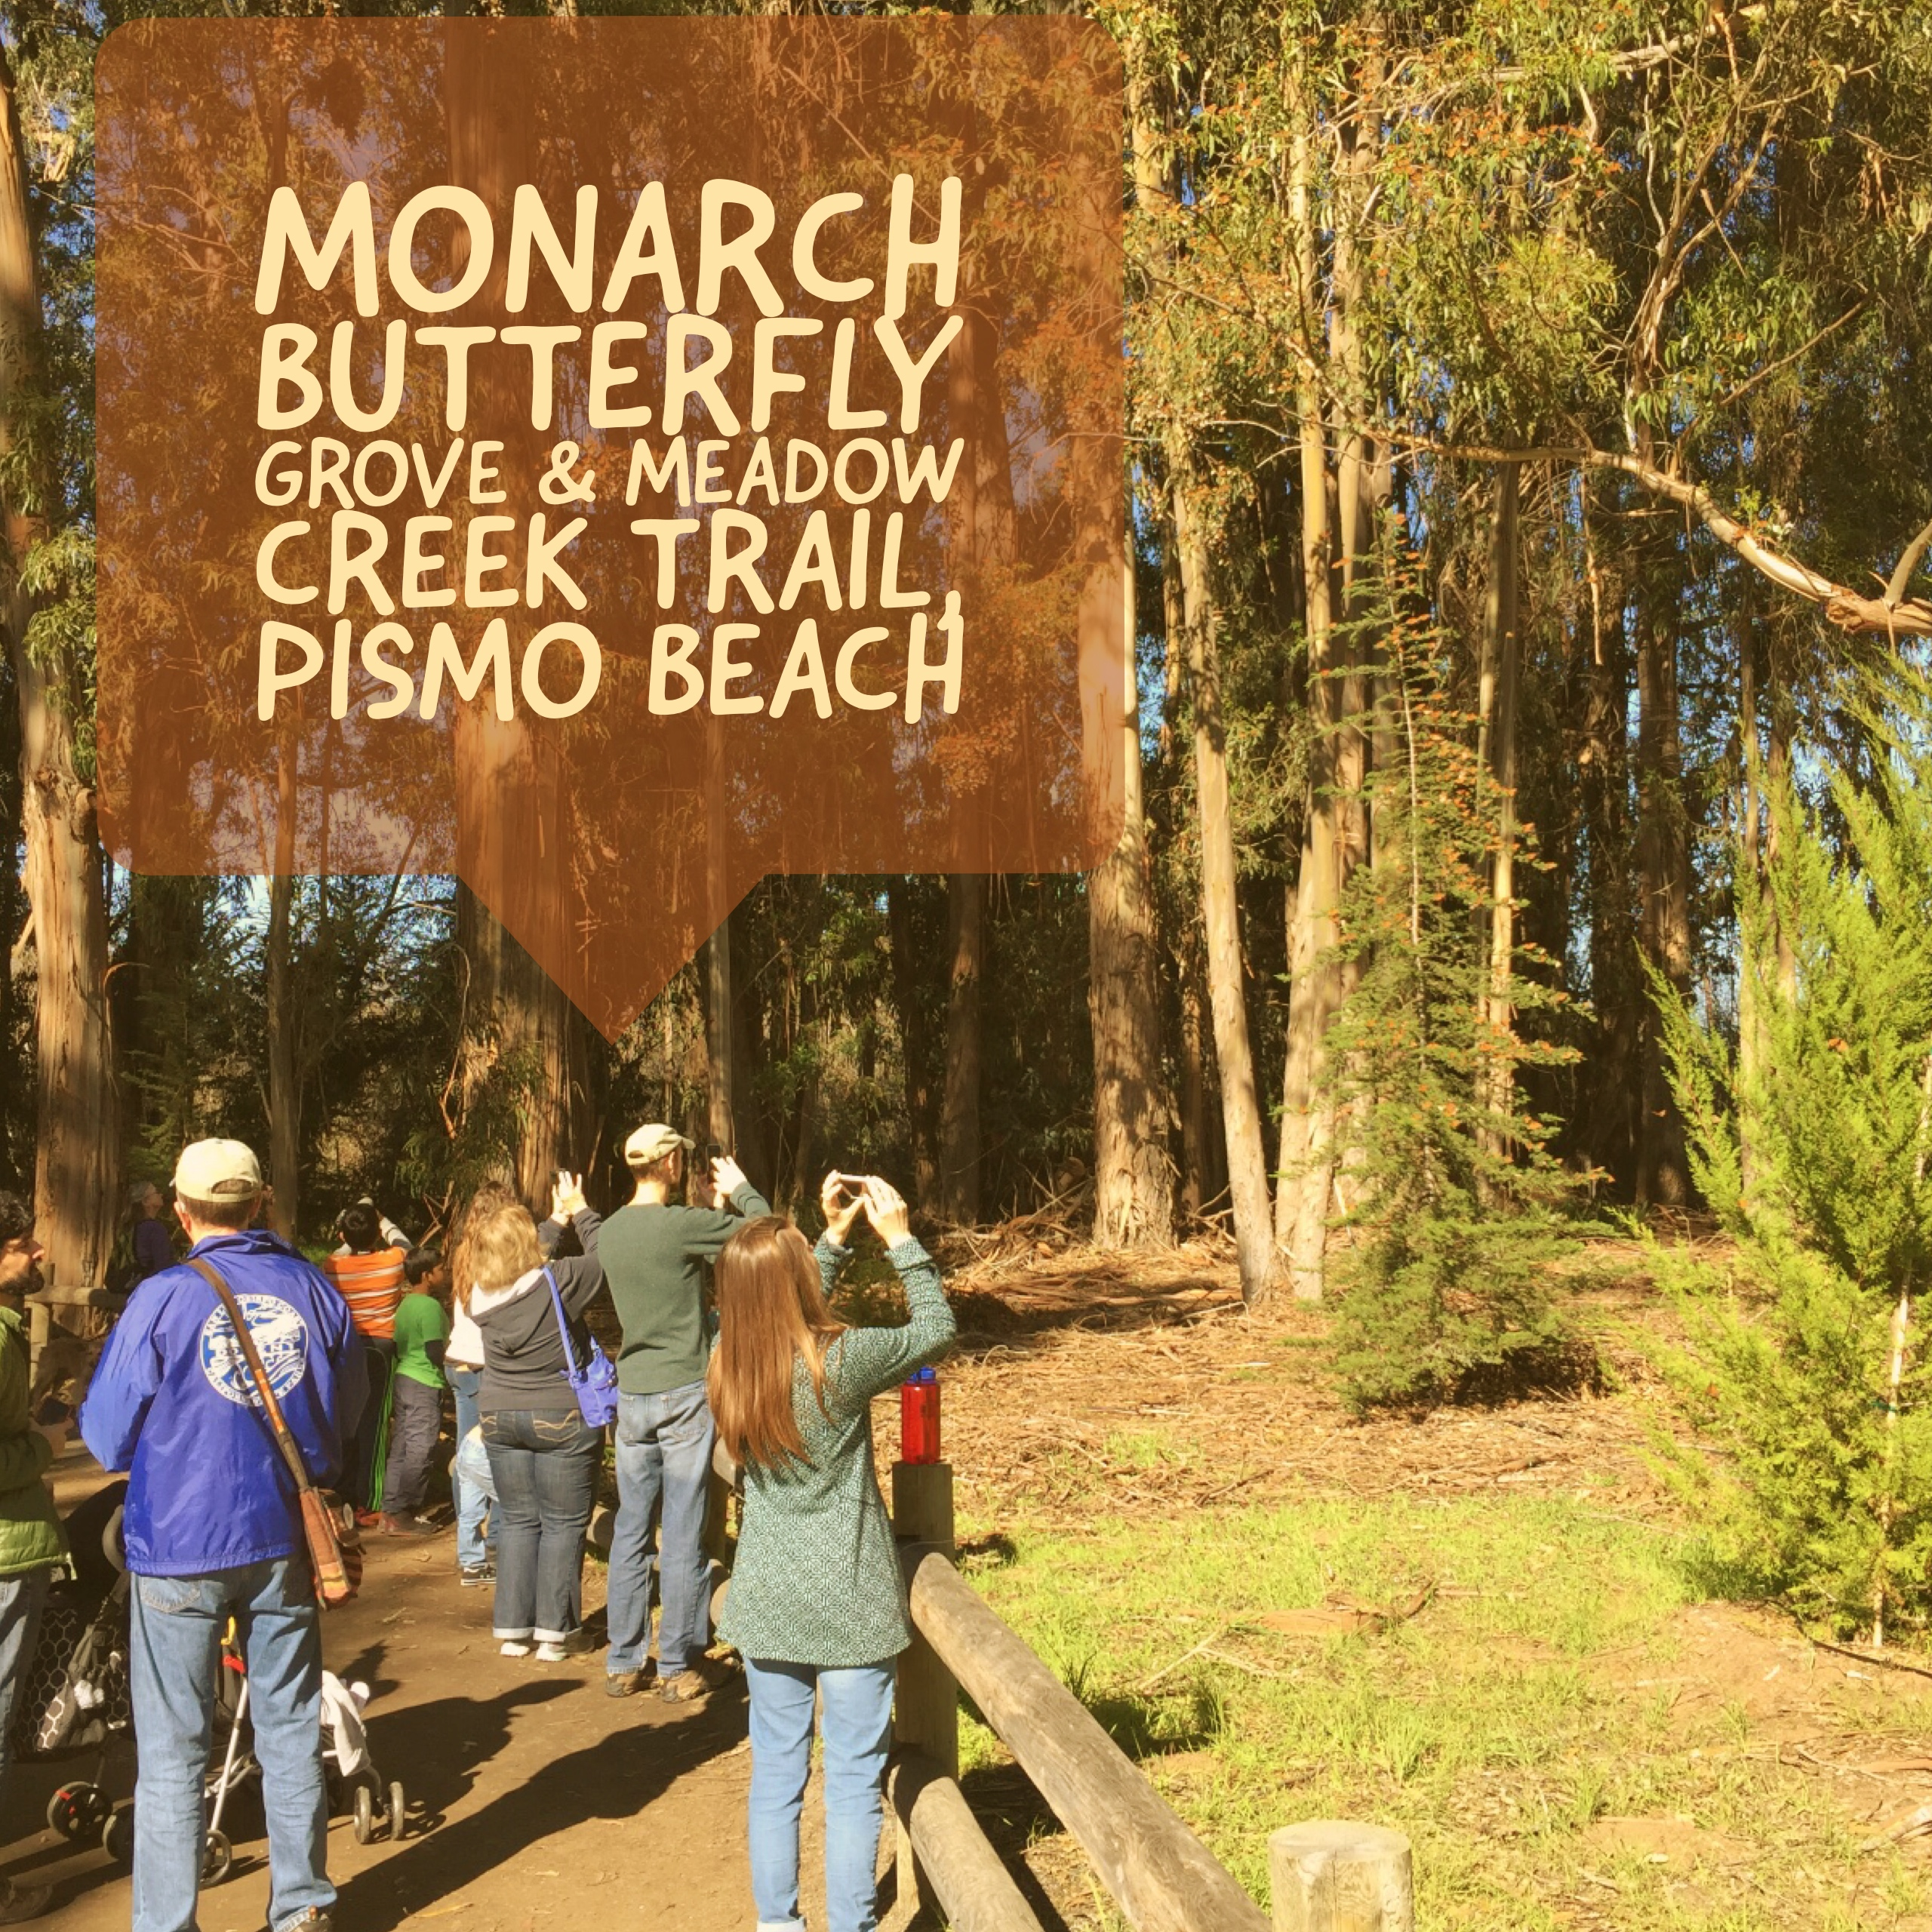 Review Monarch Erfly Grove With